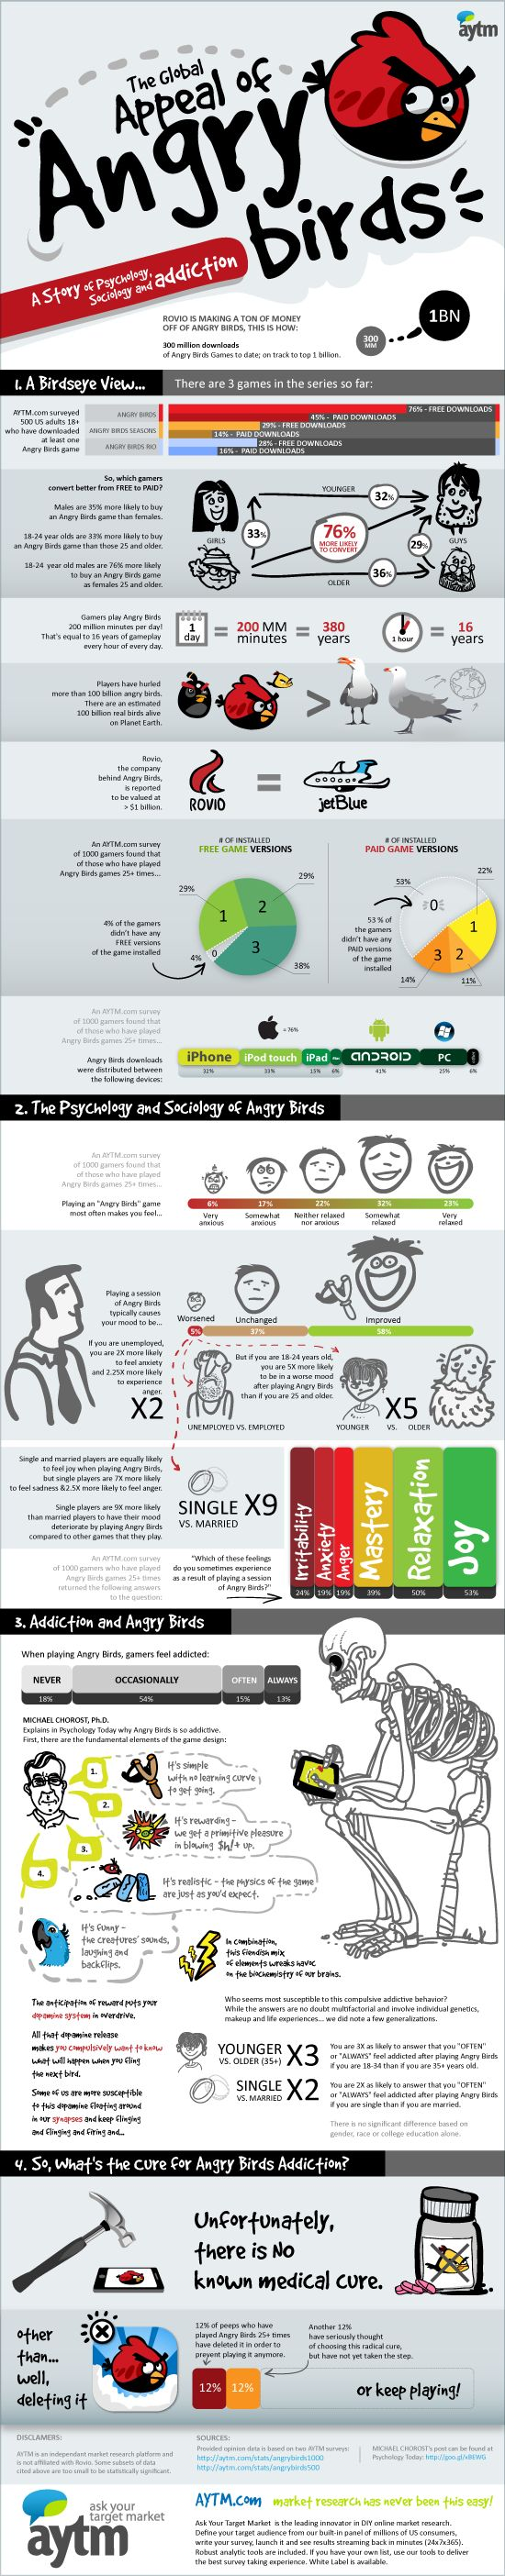 Why is Angry Birds so Damn Popular? #infographics #games